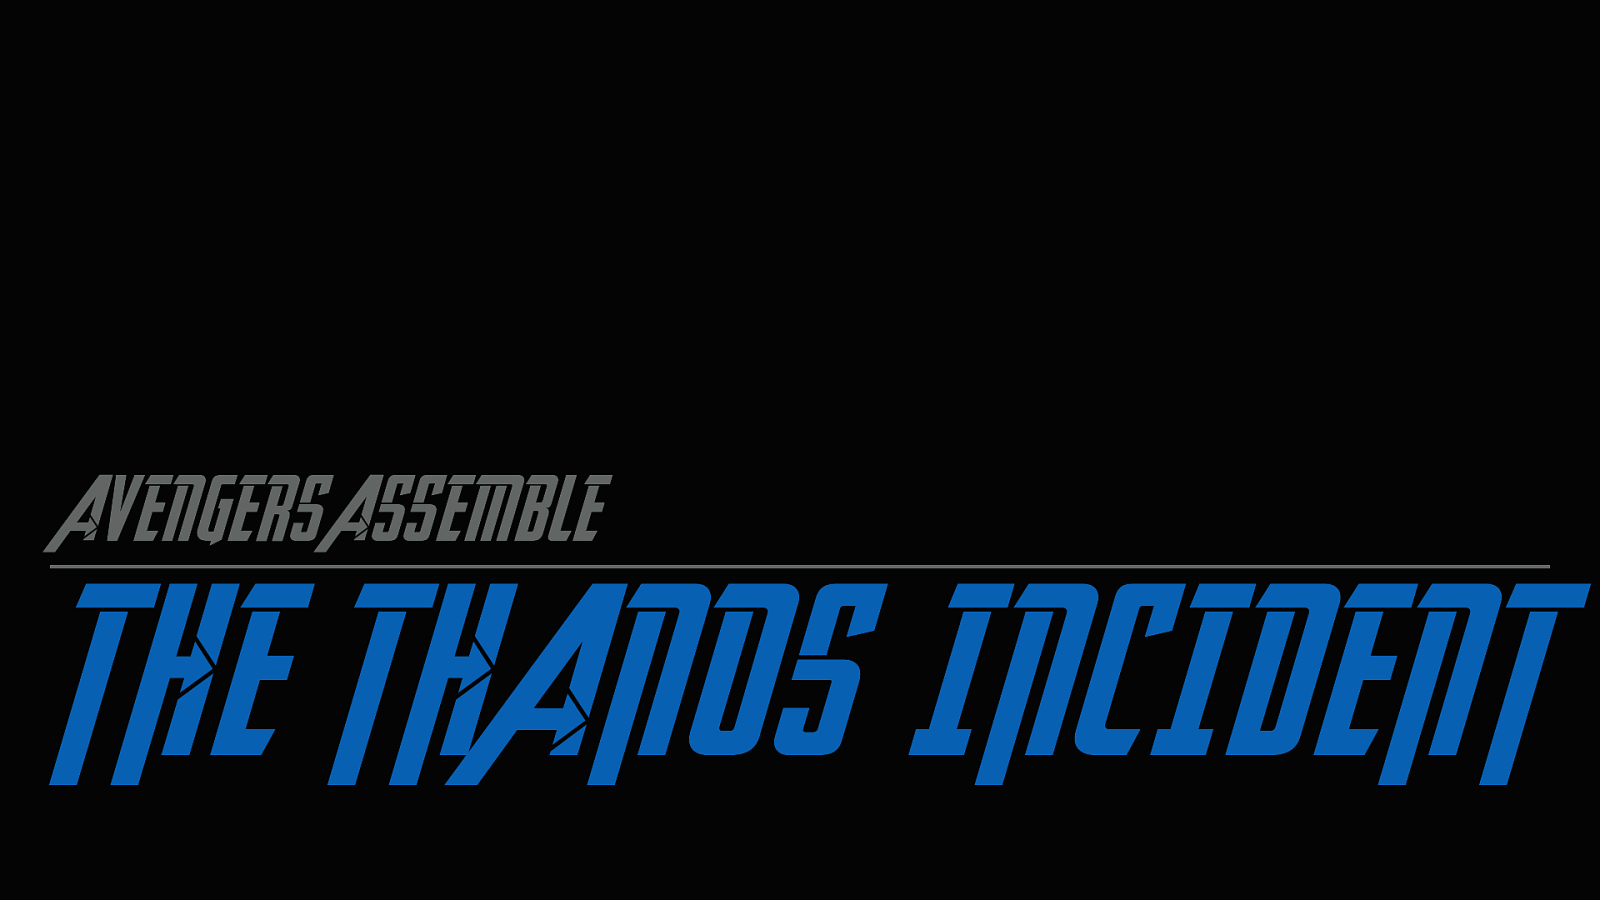 Avengers Assemble - The Thanos Incident